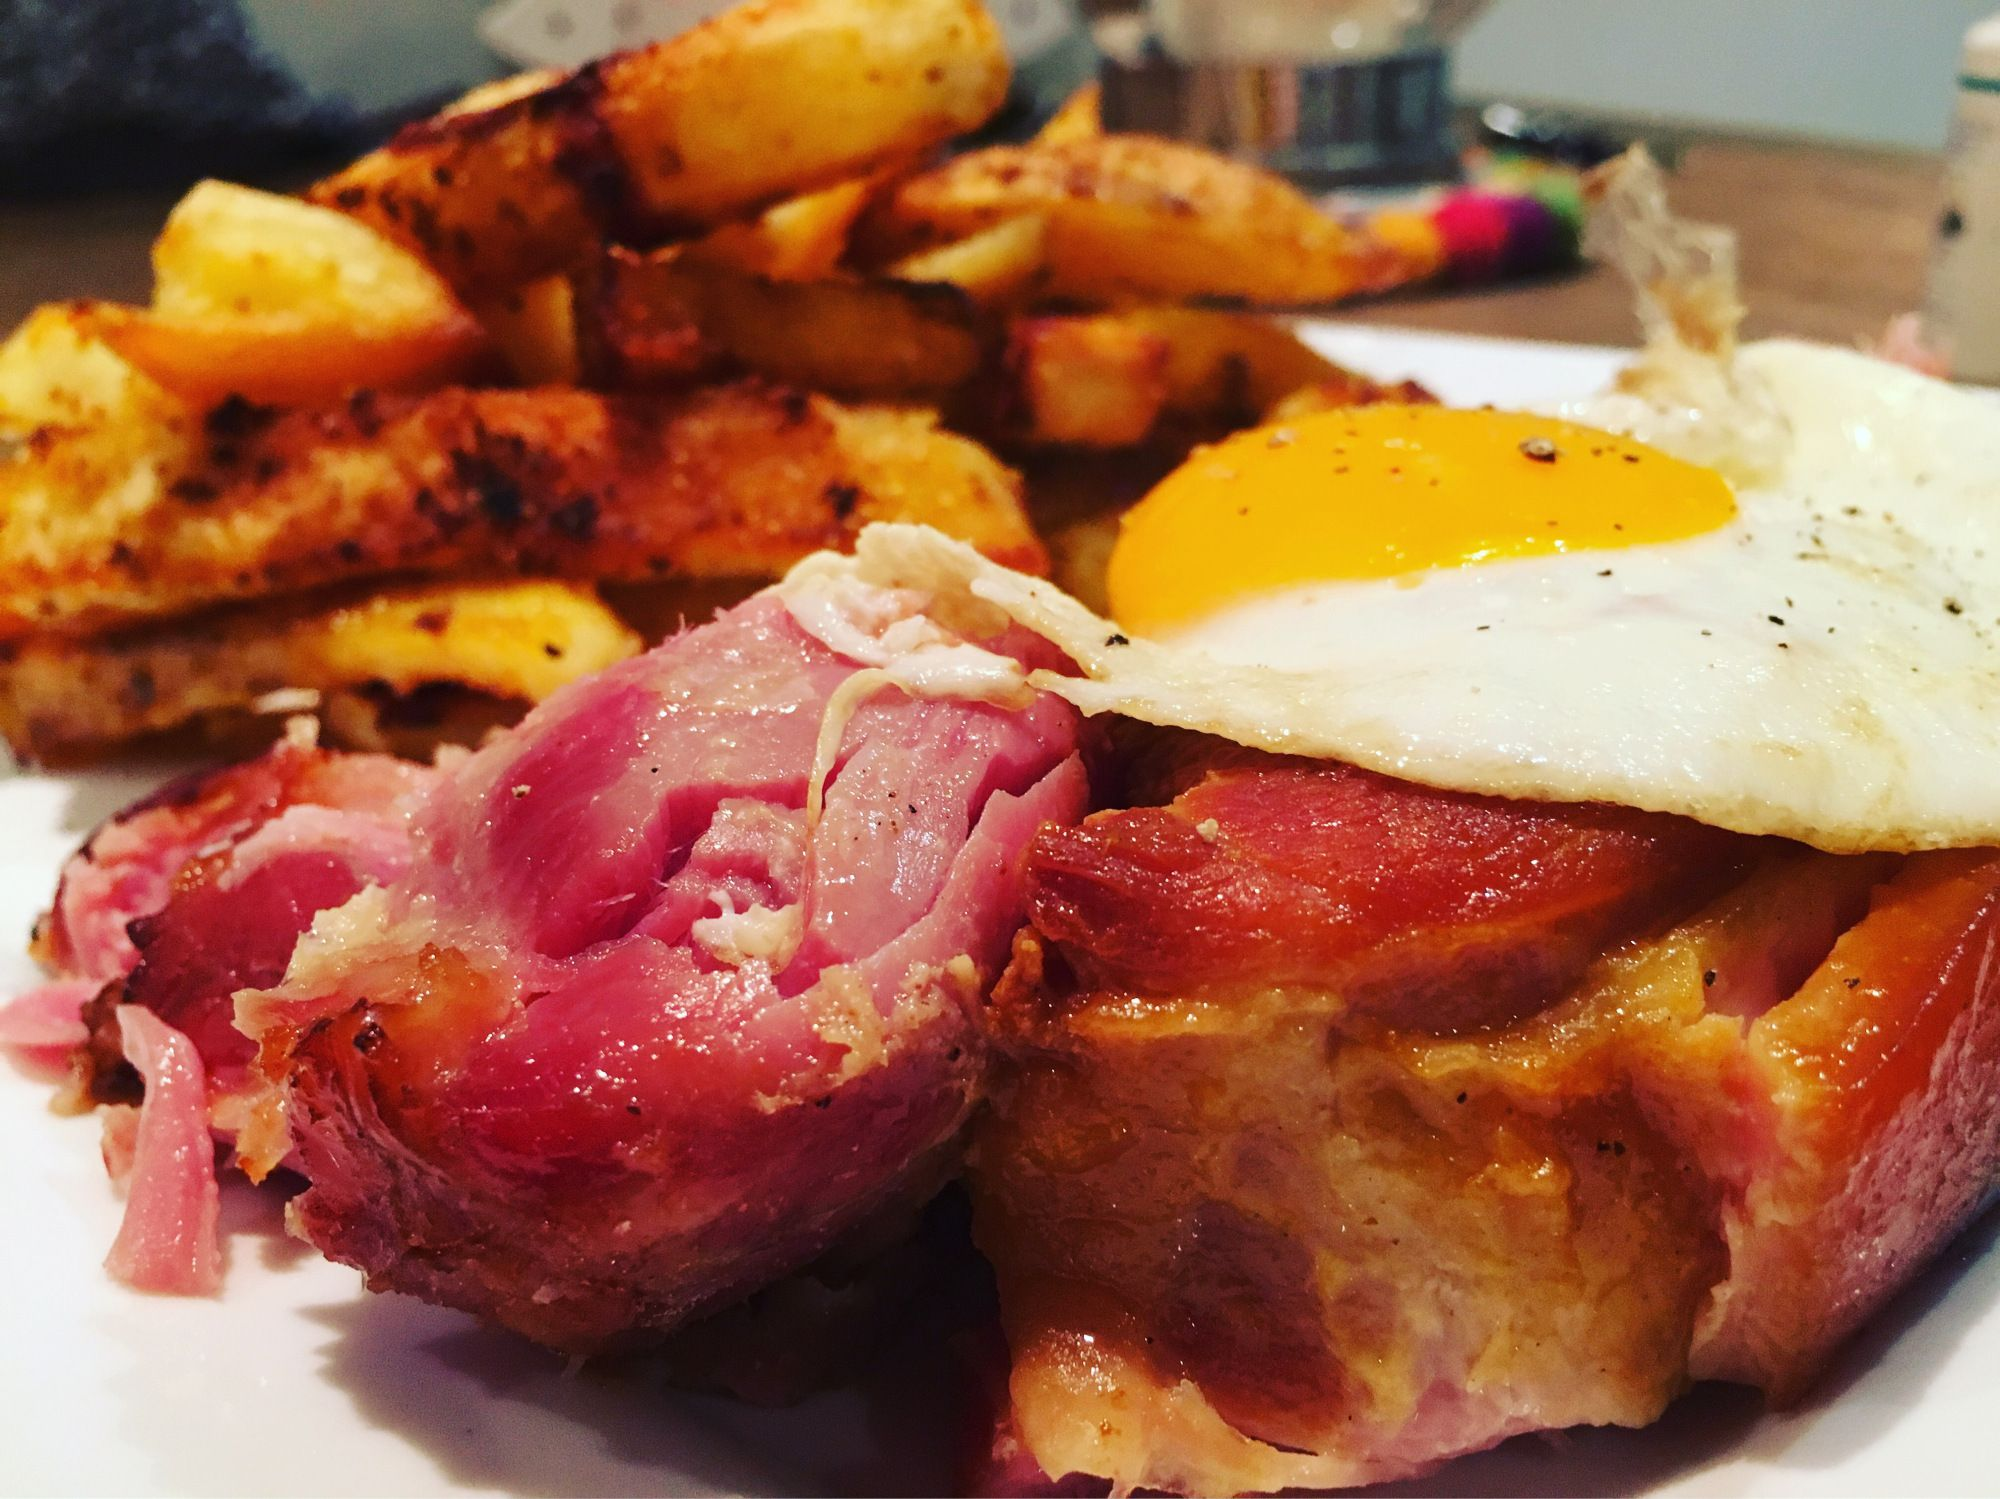 Pulled ham egg and chips Ham egg and chips is a British classic. But mostly made with chewy Gammon steaks. Whenever I cook gammon I use a whole joint and slow cook it the way my Mum used to do it. …